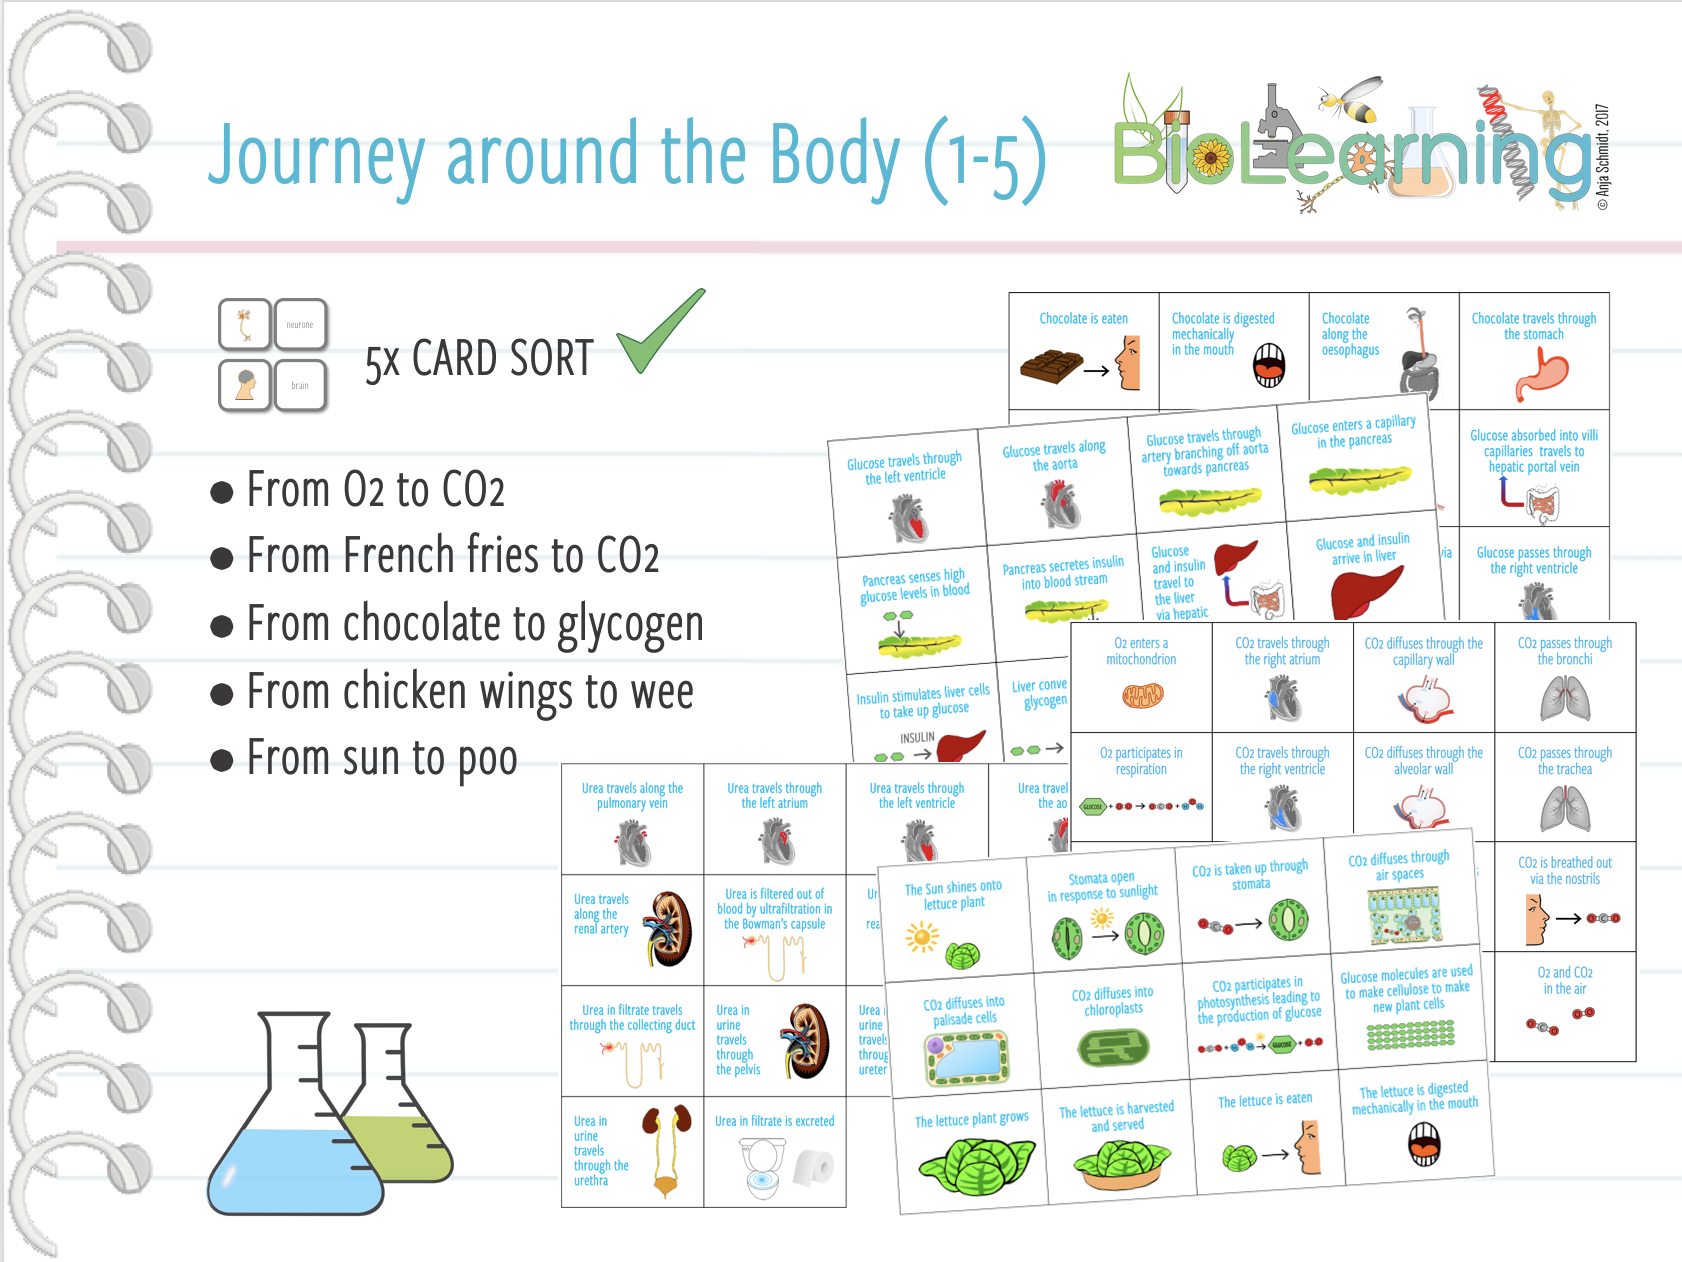 Journey around the body (1-5) - 5x Card sort (KS4)